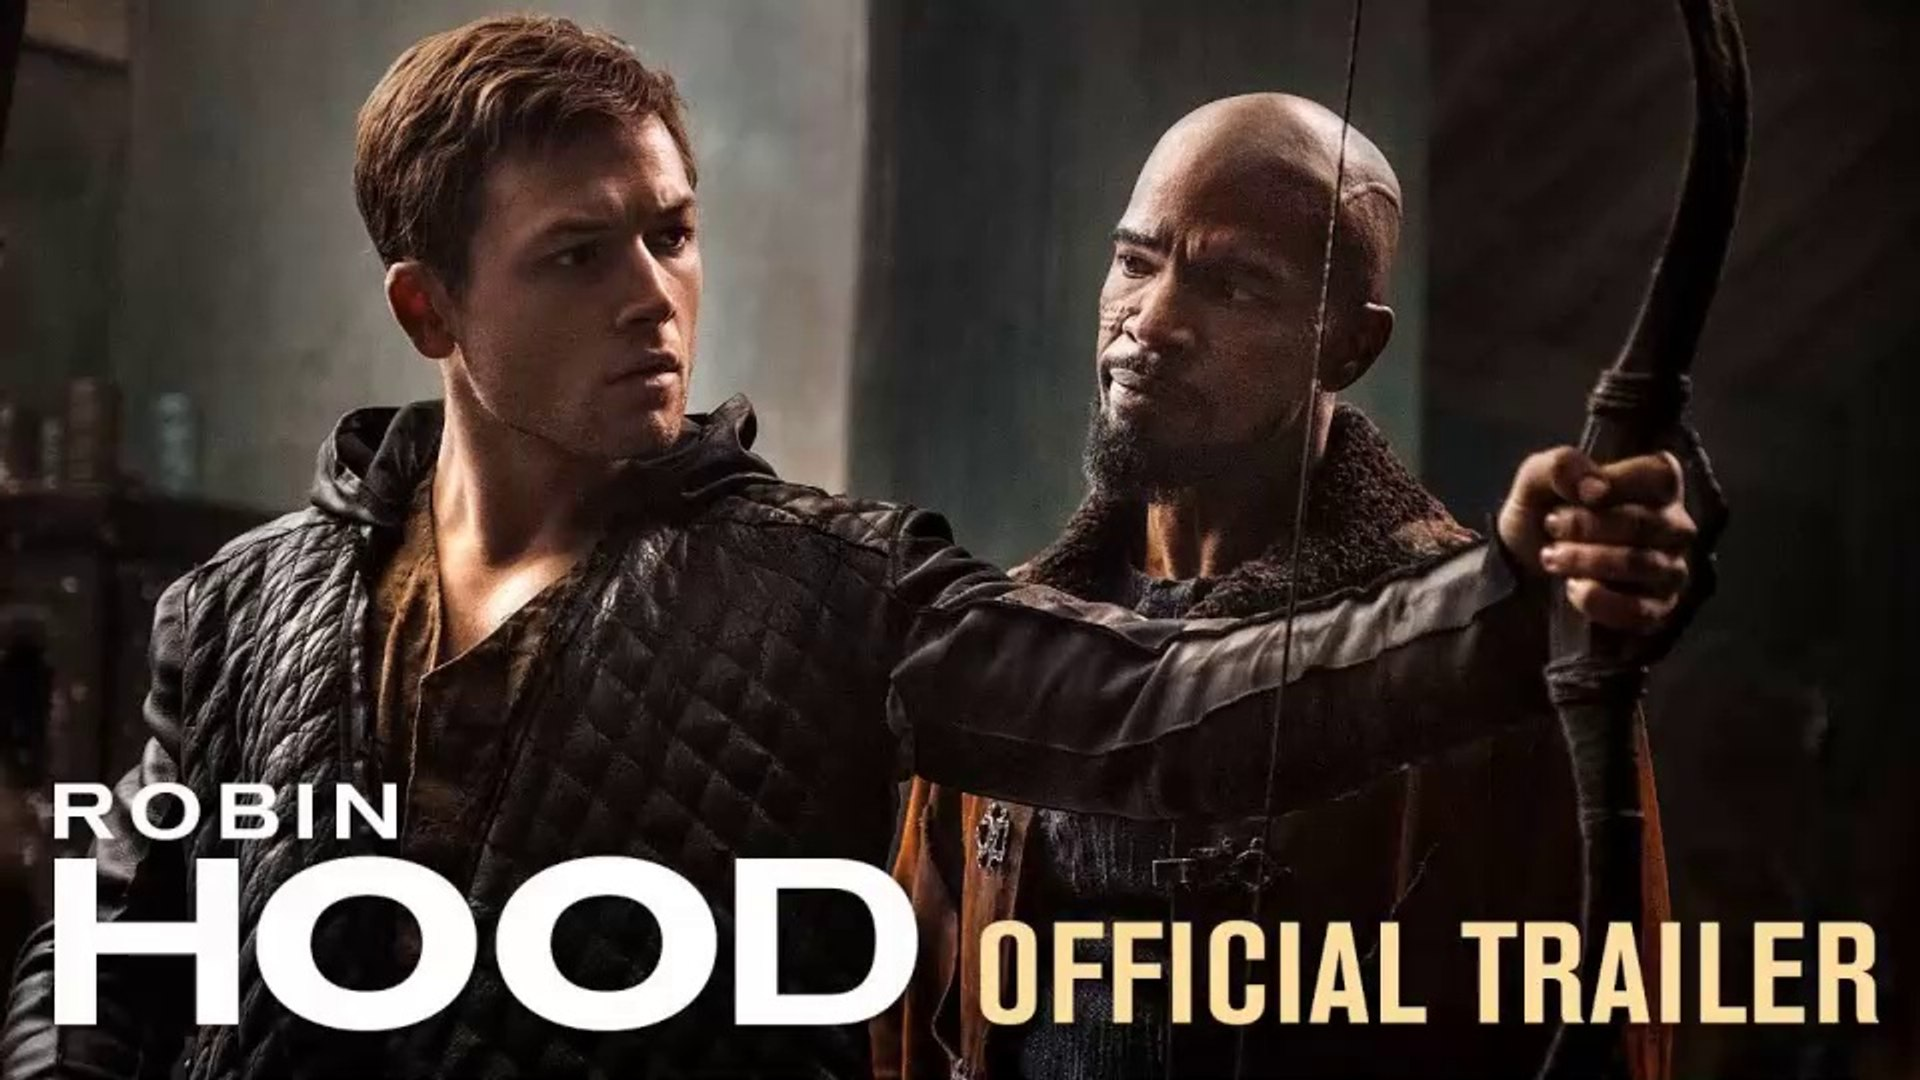 Robin Hood (2018 Movie) Official Trailer - Taron Egerton, Jamie Foxx, Jamie Dorna